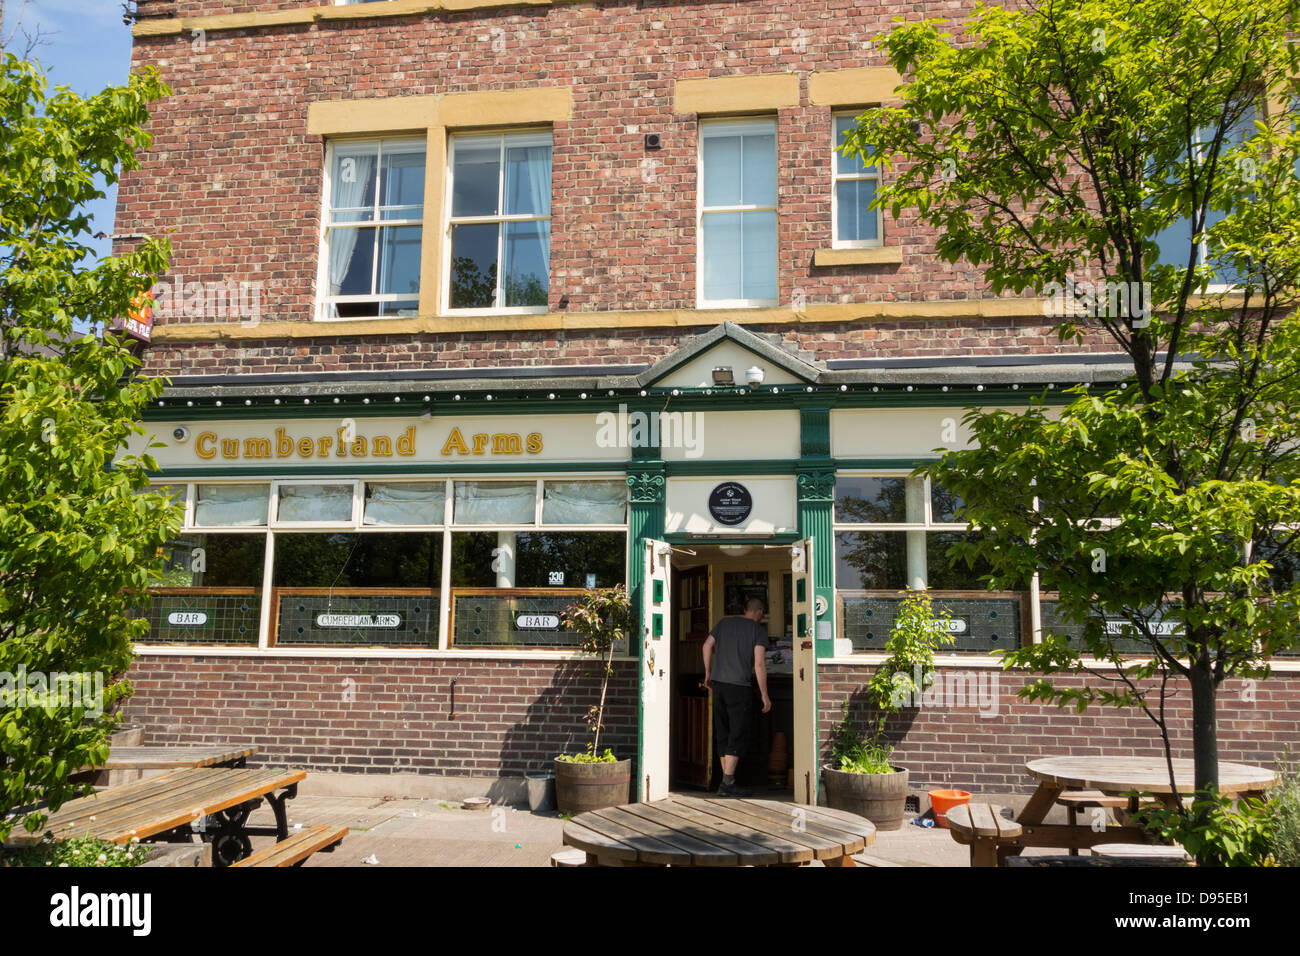 the-cumberland-arms-pub-at-ouseburn-near